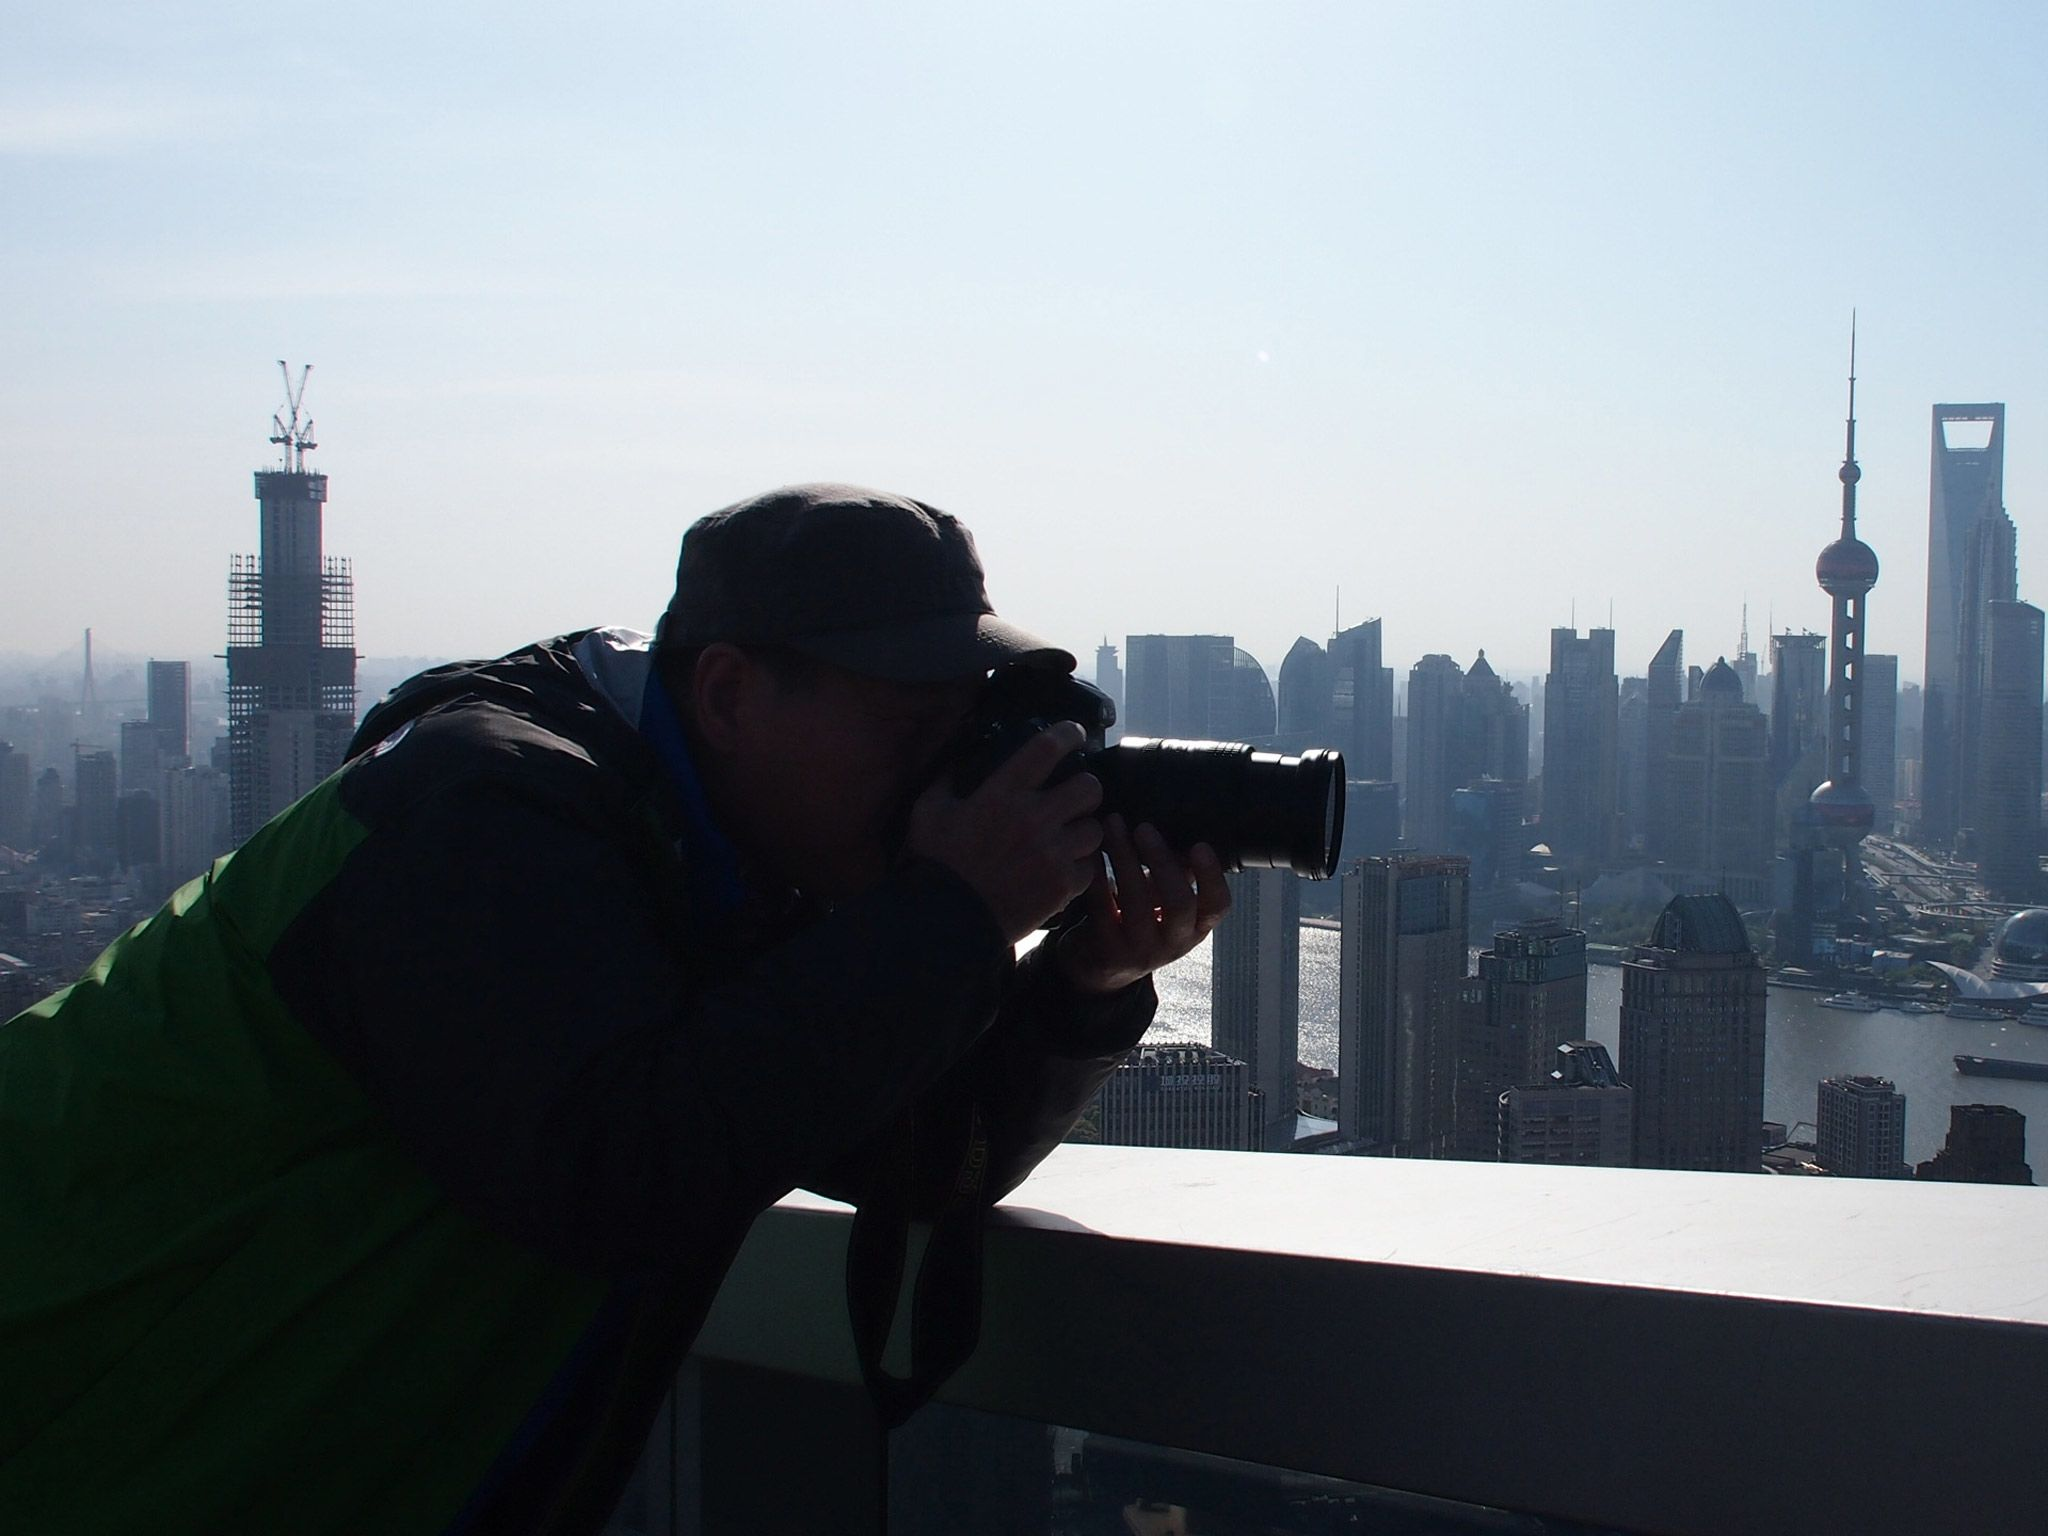 Shanghai: Photographer Zheng Xianzhang takes a photo from the rooftop of a skyscraper. [Photo of the day - July 2015]